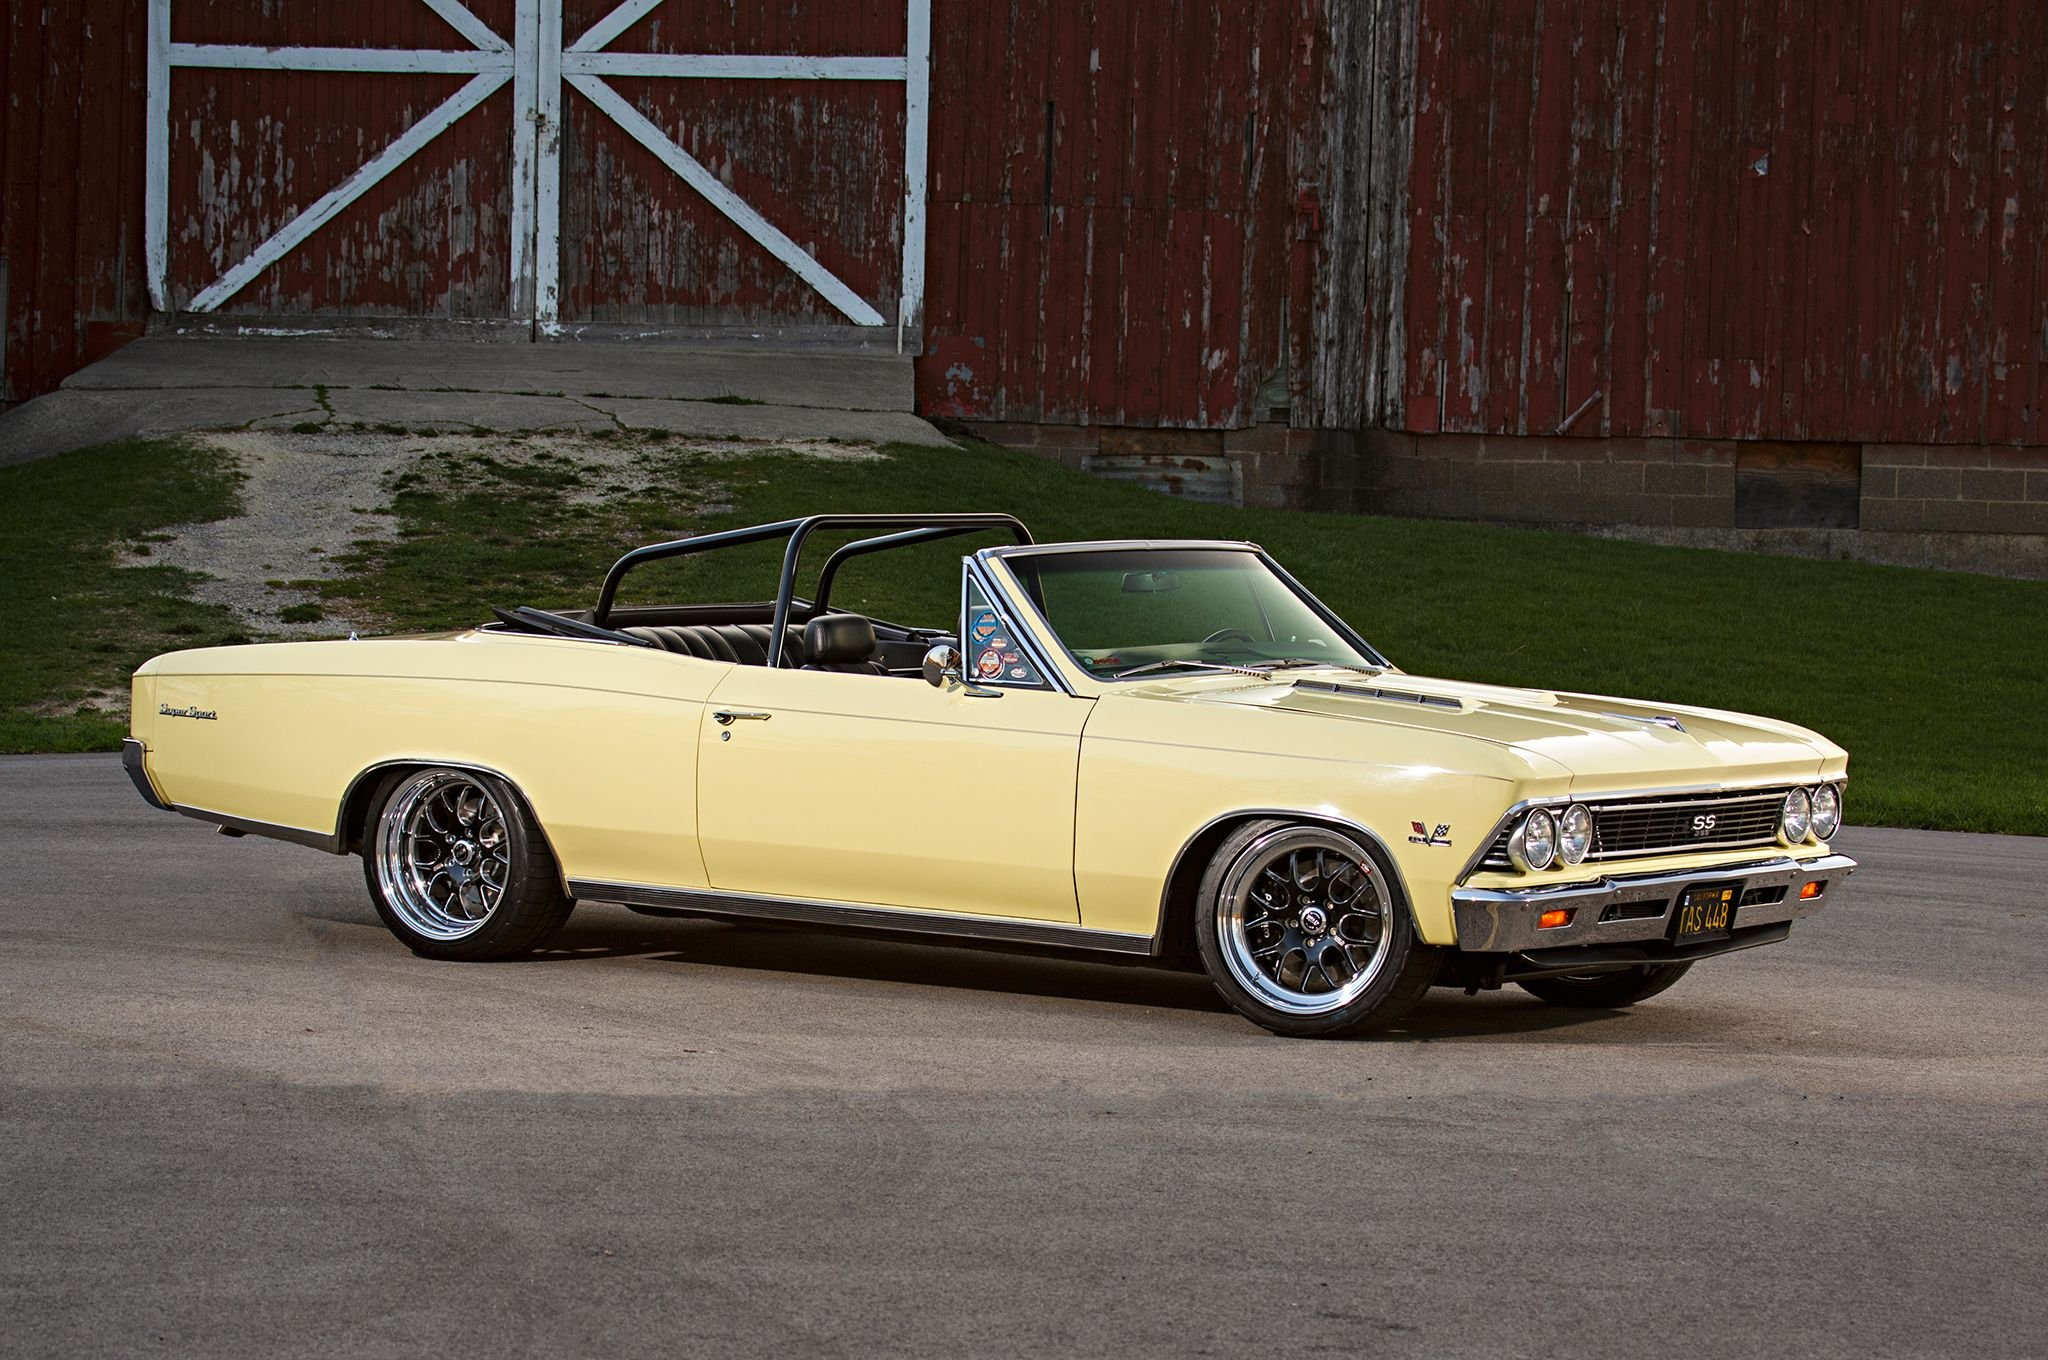 1966 Chevrolet Chevy Chevelle Convertible Super Street Pro Touring Bel Air Conv Low Usa 07 Wallpaper 2048x1360 812860 Wallpaperup